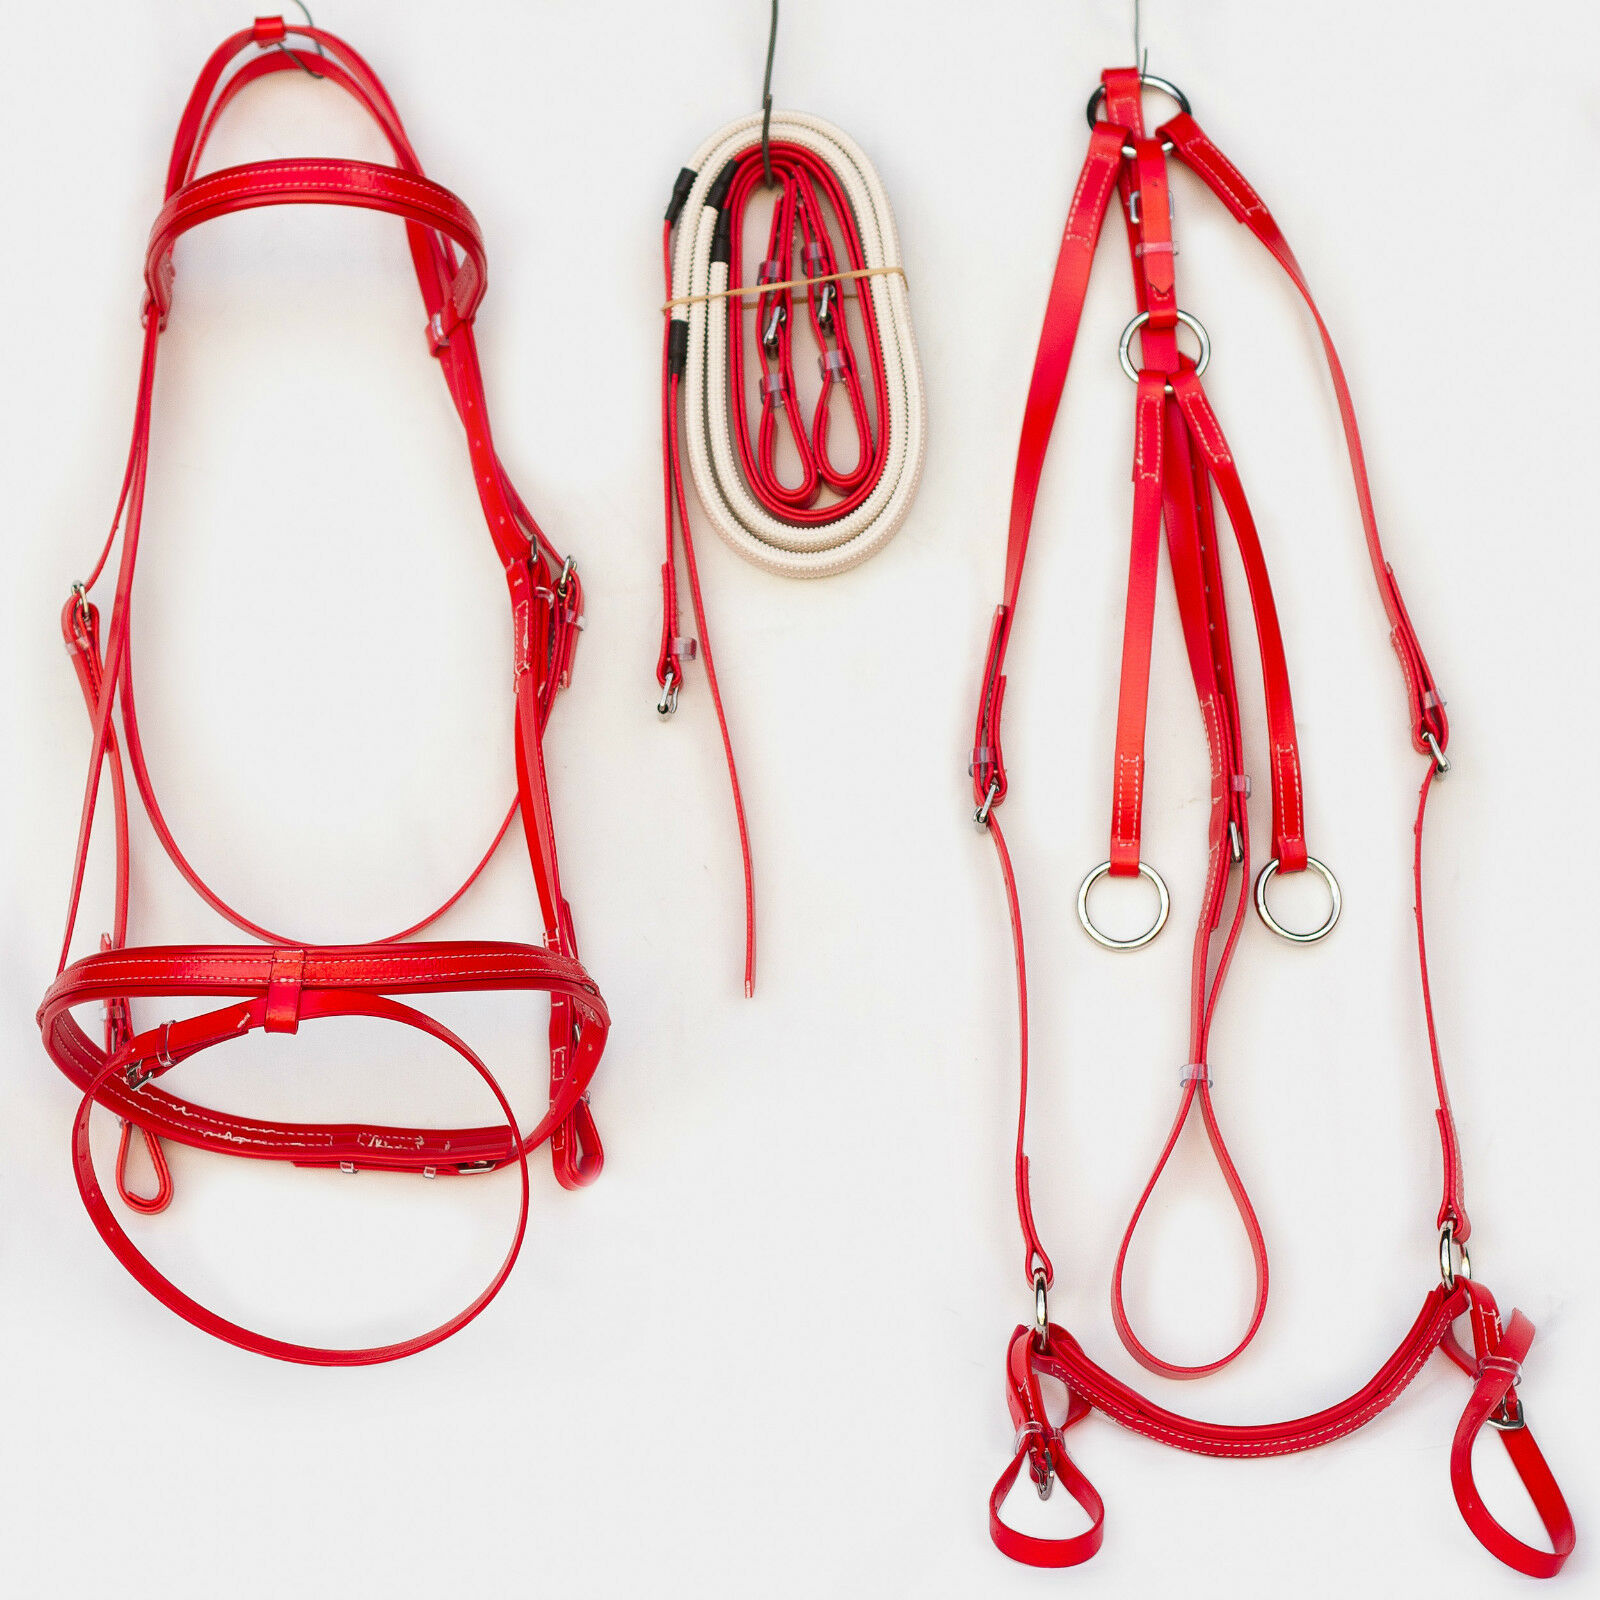 Full Dimensione Hanovarian Bridle, Reins and Breastplate Set  rosso